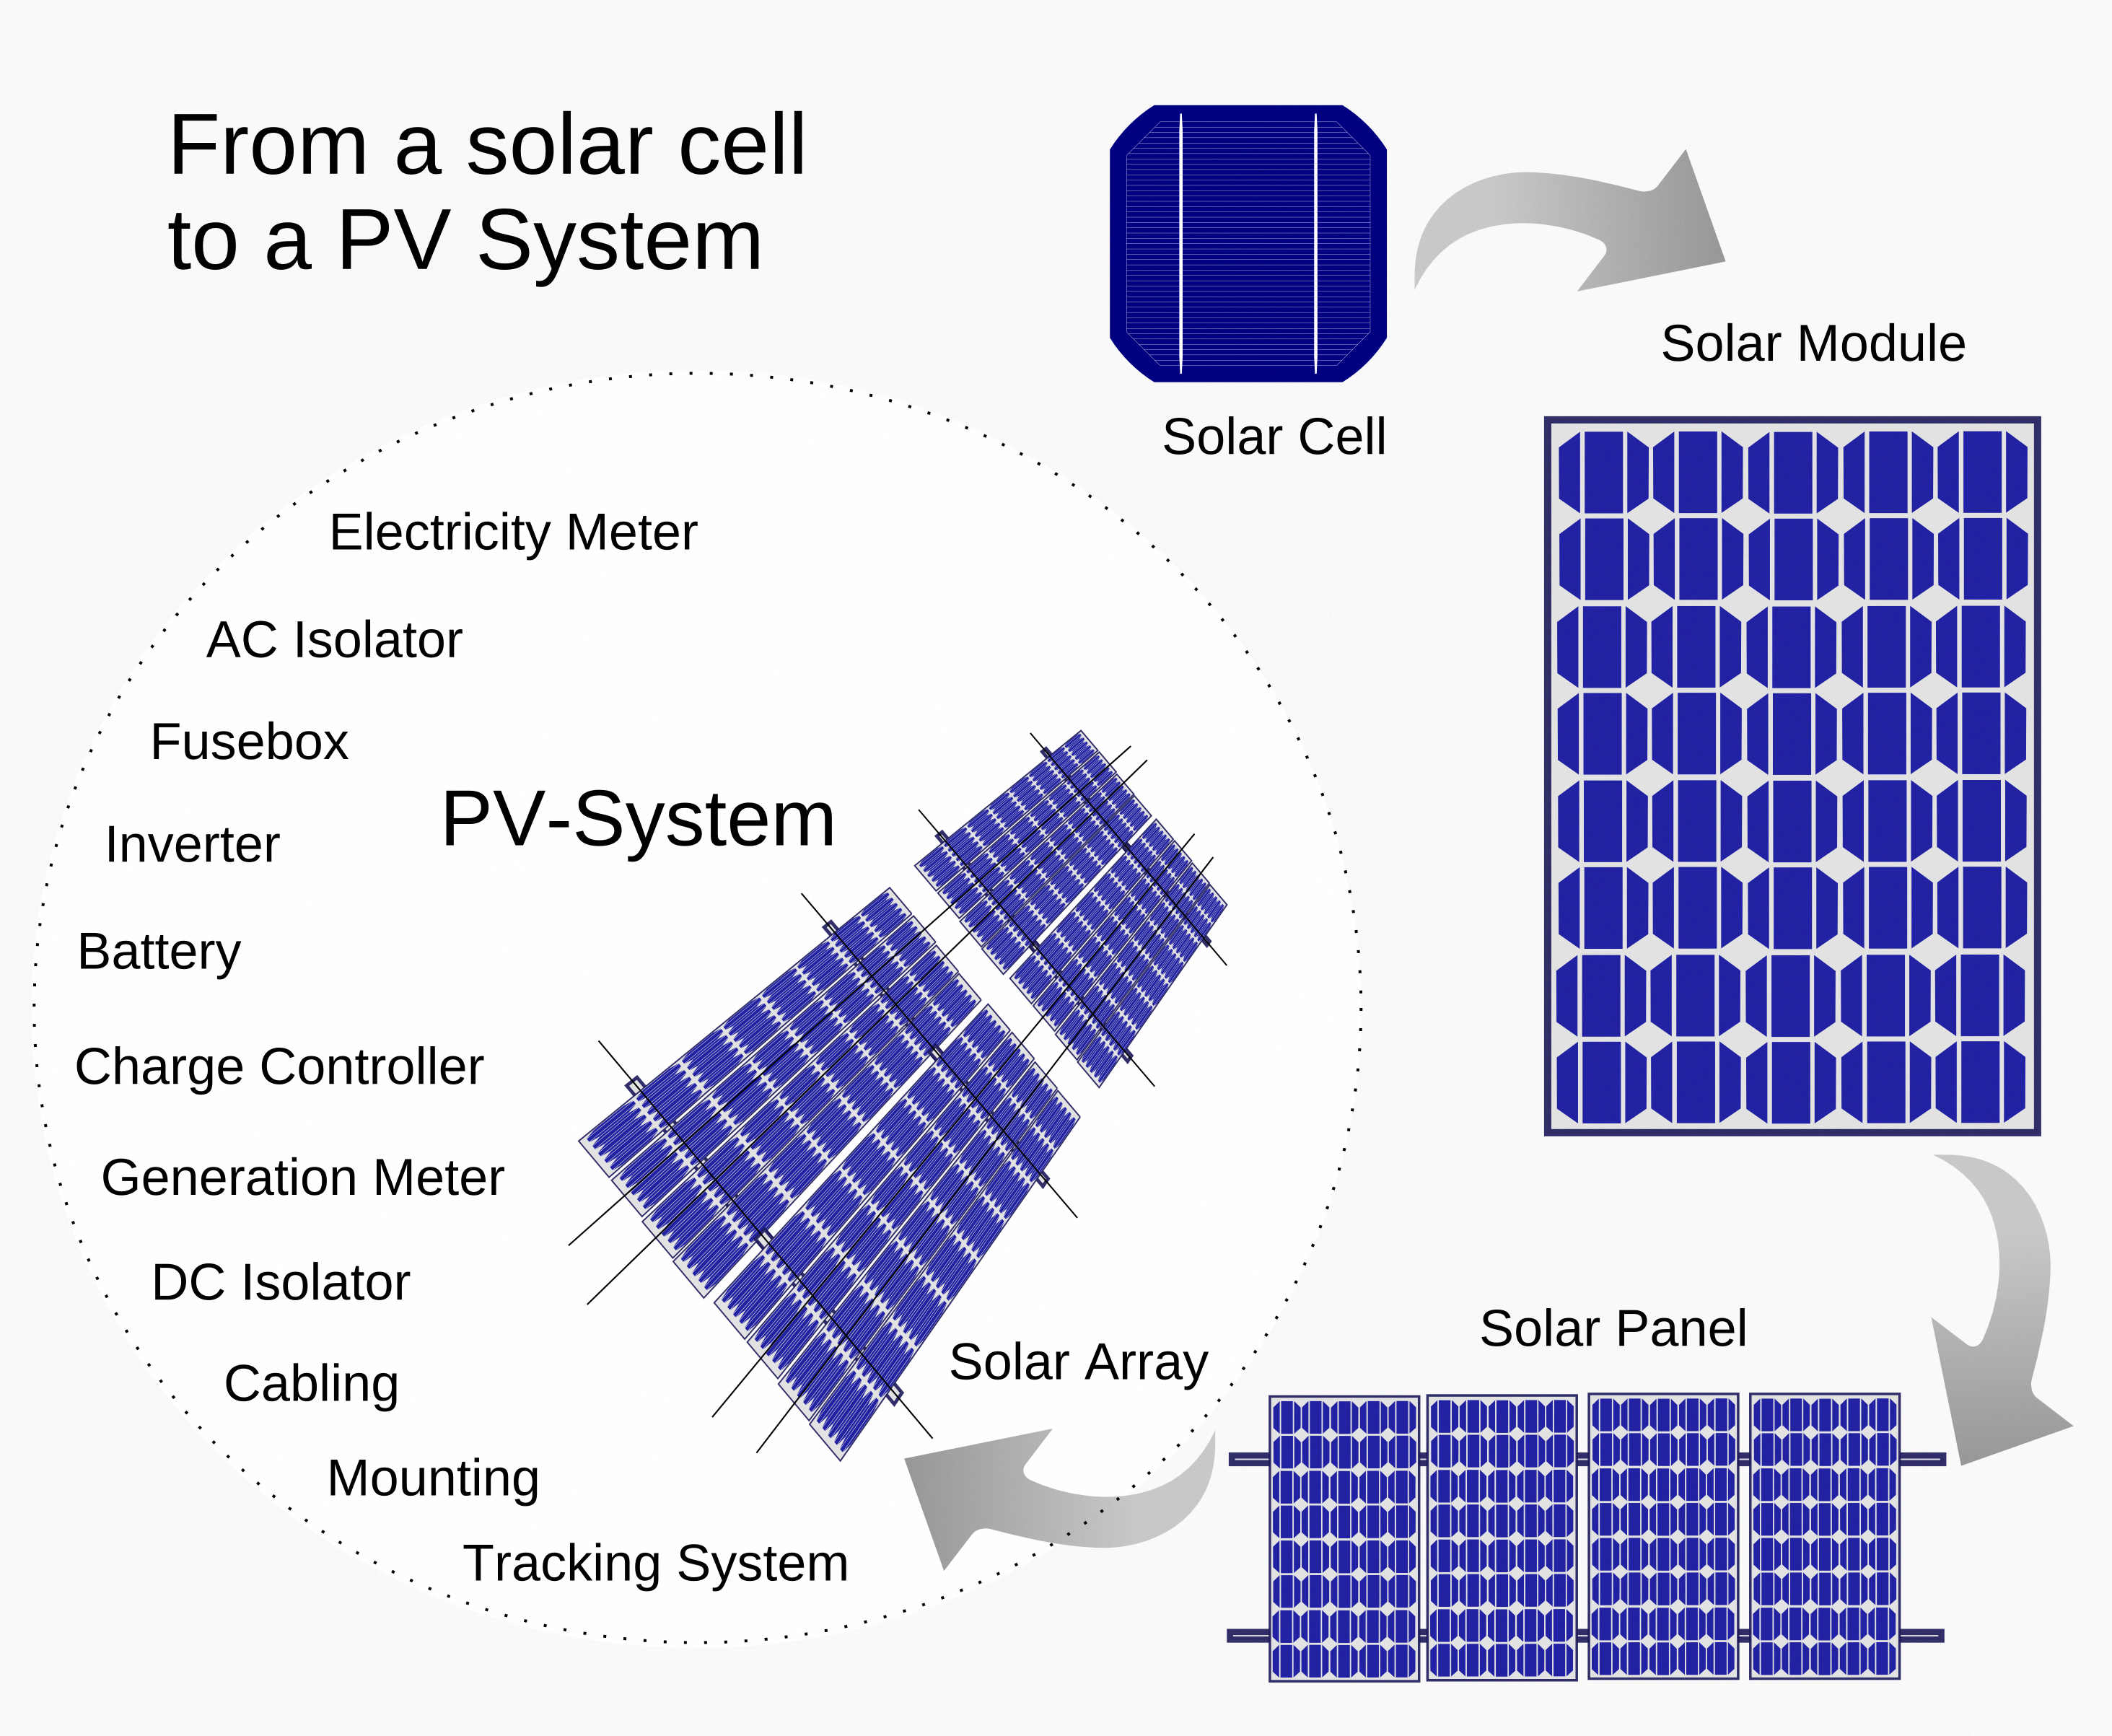 How To Make A Solar Panel An Easy To Follow Guide Our Solar Energy Solarpanelsforhome Solarpanels Solarenergy So In 2020 Pv System Solar Panels Solar Power Panels